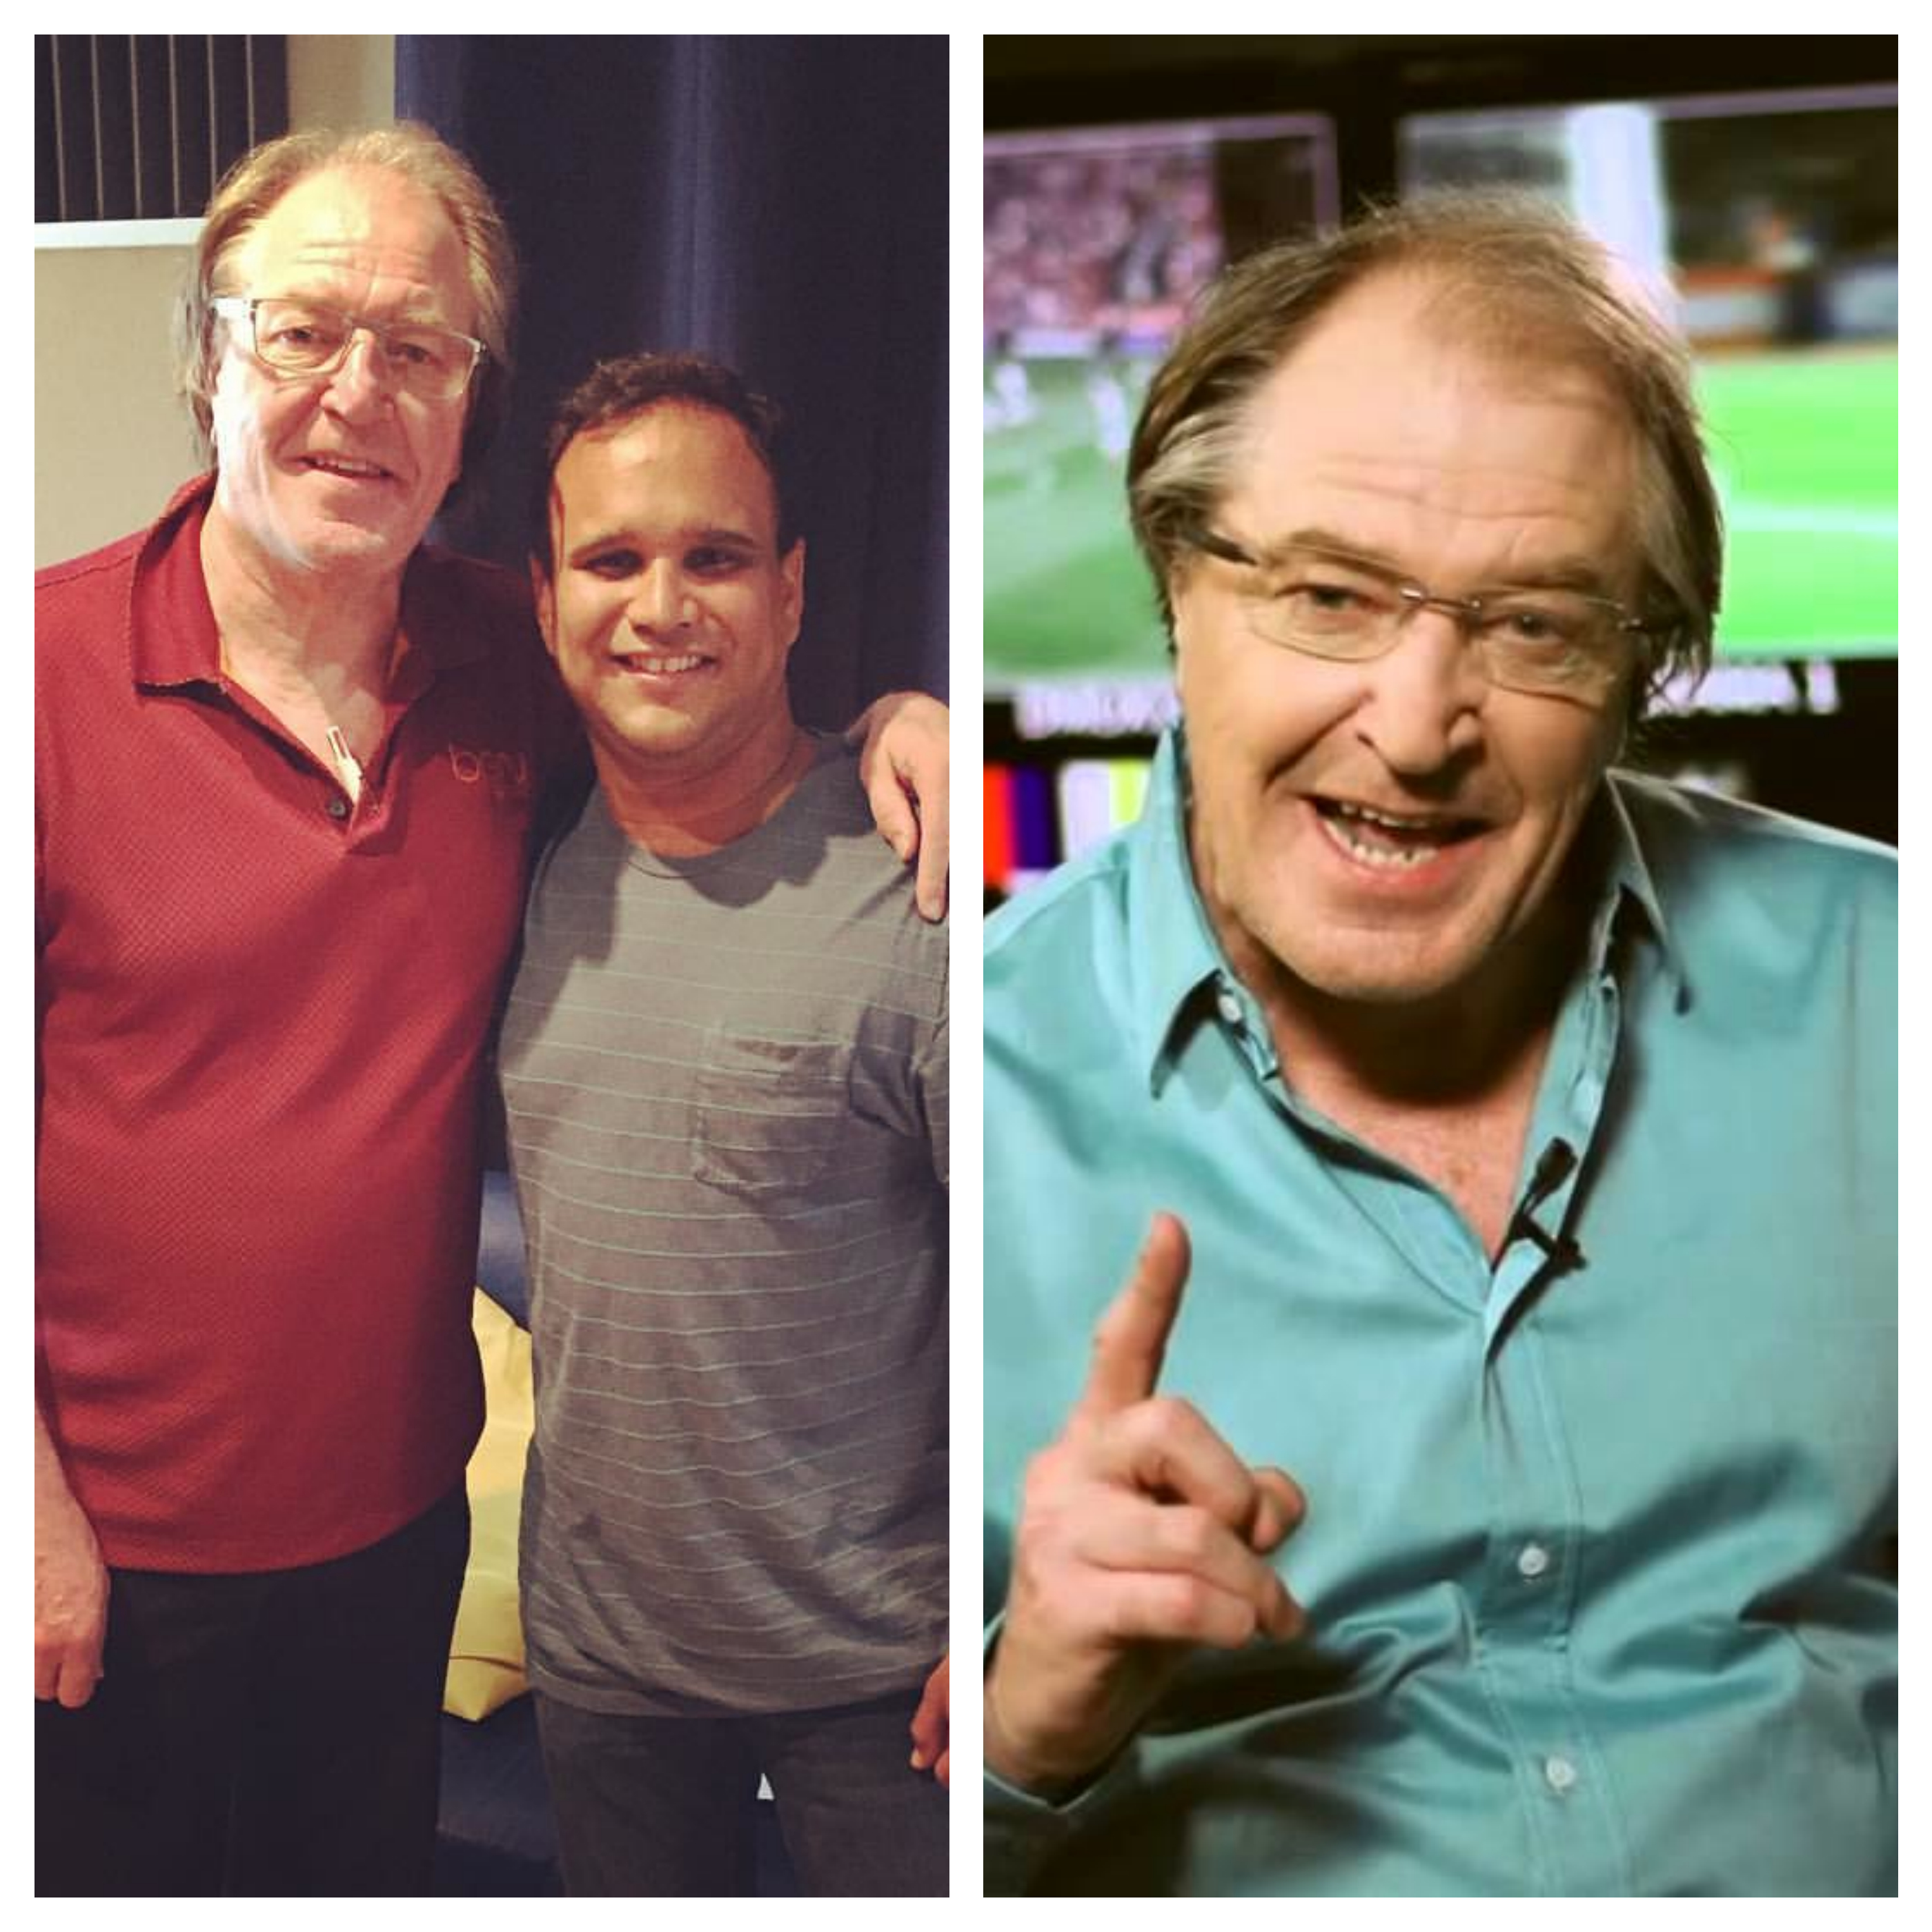 Ray Hudson recording VOs for commercial campaign for Soccer Shots Store